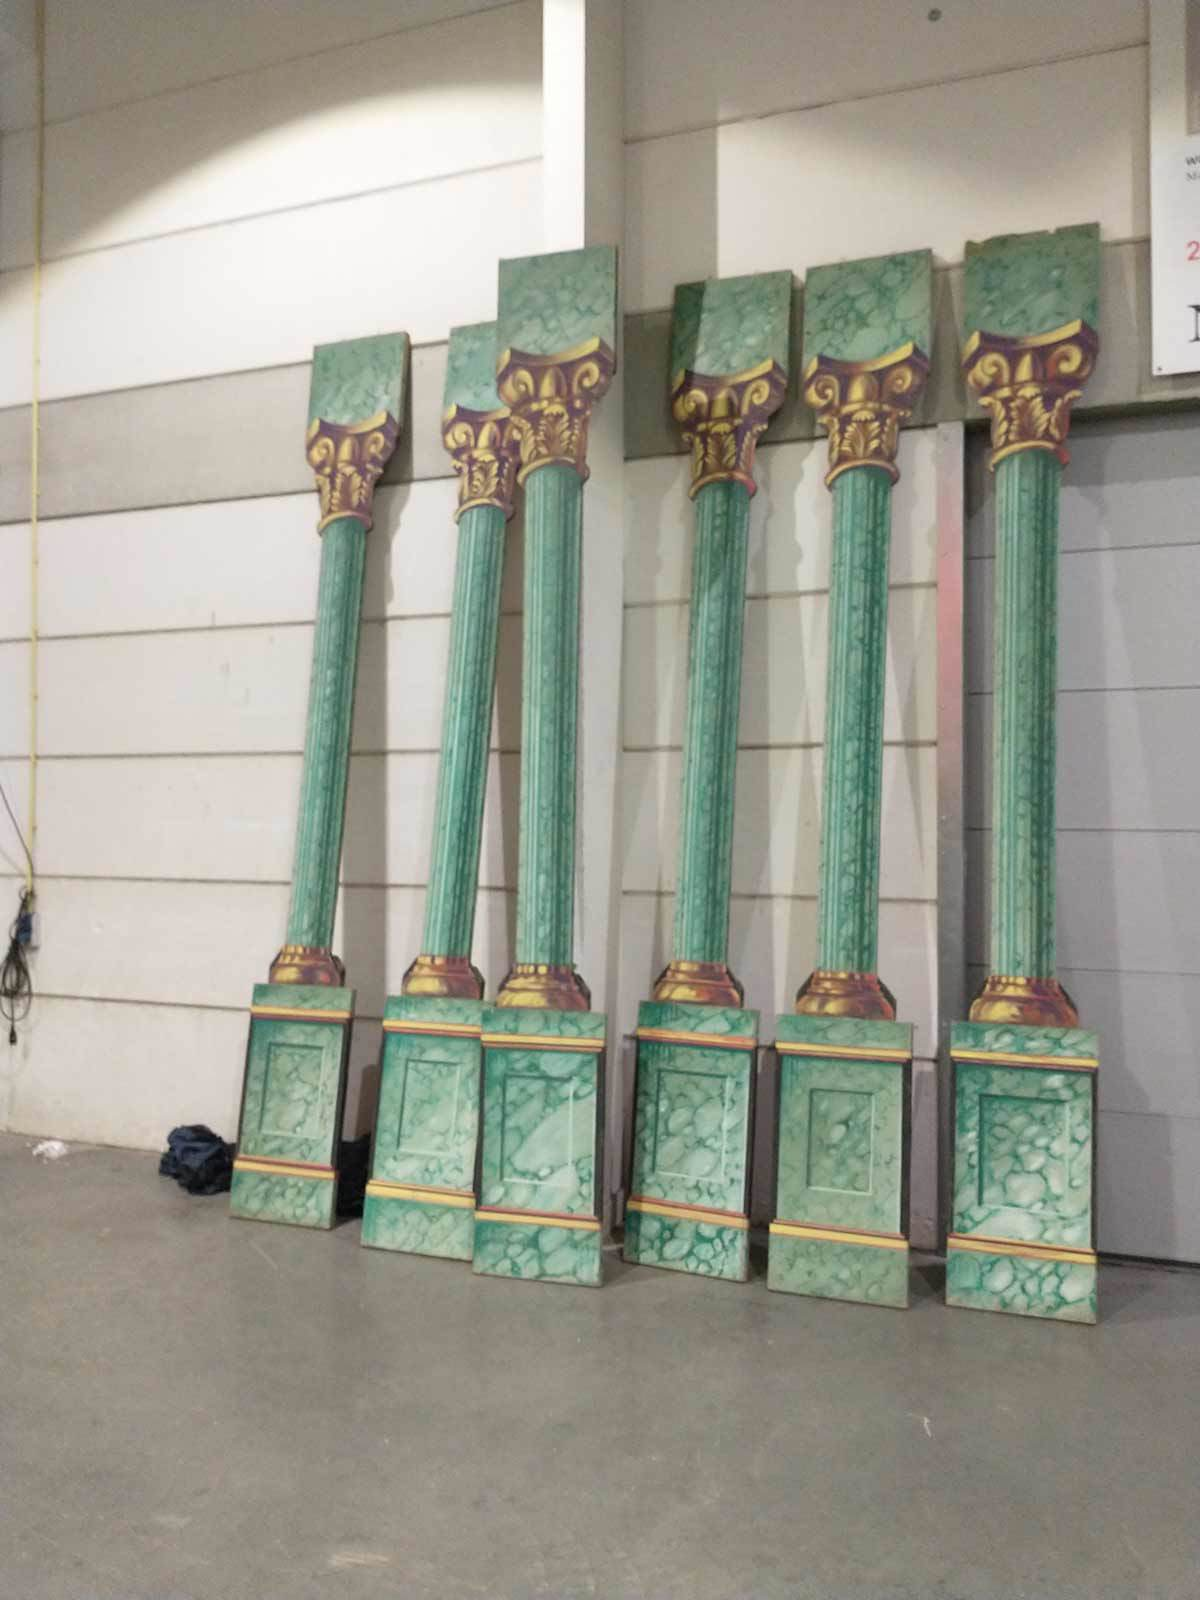 A set of painted columns from the Van den Berghe collection of historical stage scenery